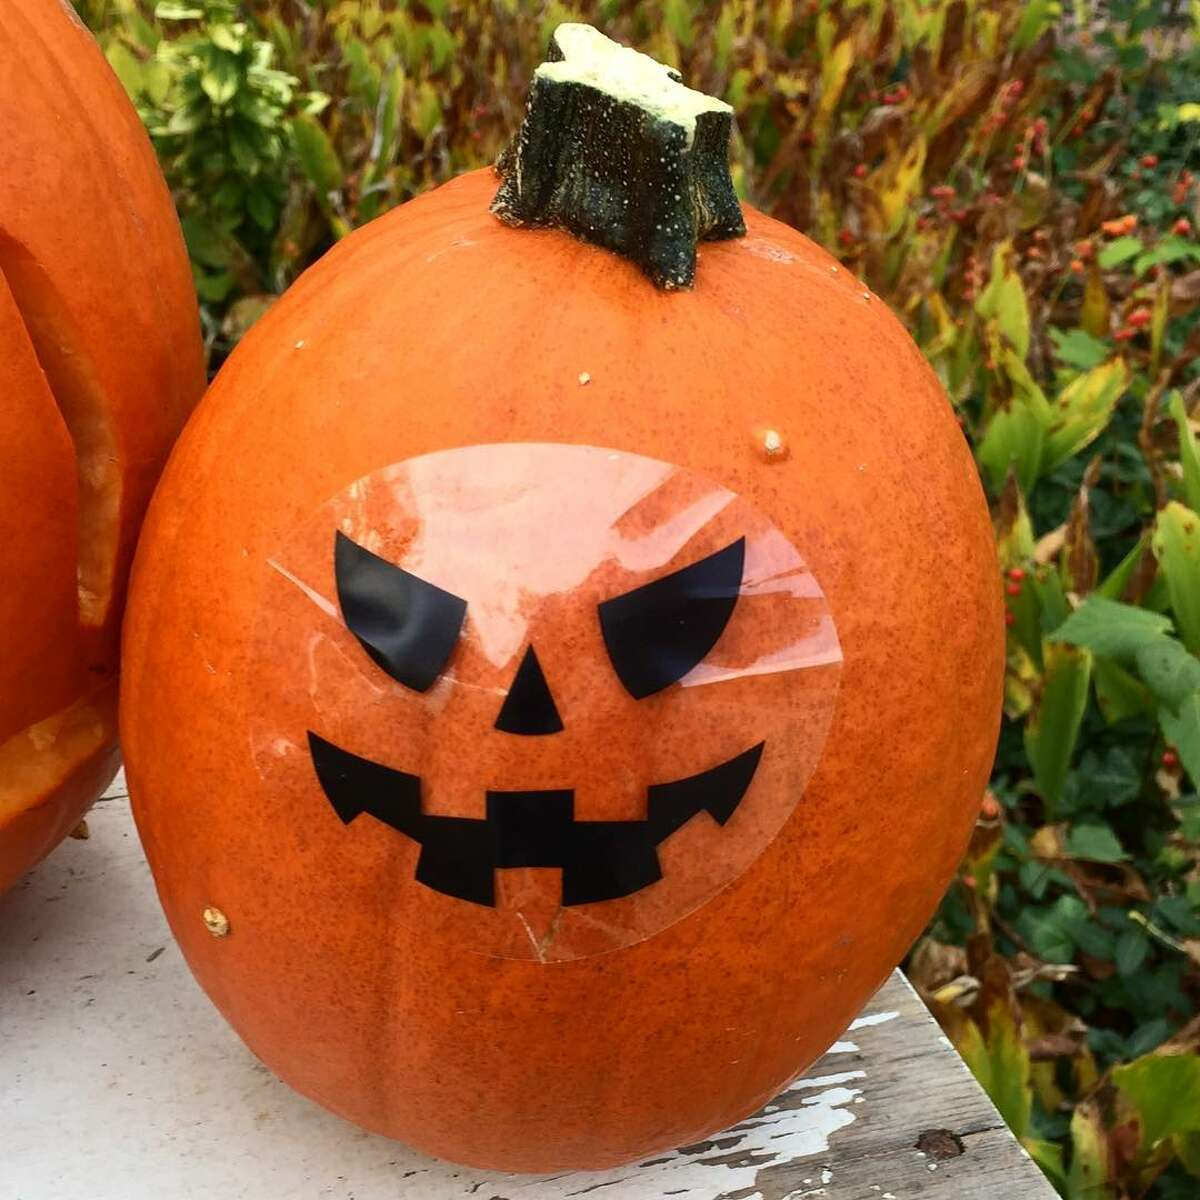 Lesson No. 2: Halloween is also not an excuse to be lazy. Sticker jack o' lantern faces make for a sad state of affairs. Using a Sharpie to draw a jack o' lantern face is pretty lazy, but slapping on a jack o' lantern face sticker is a new low.